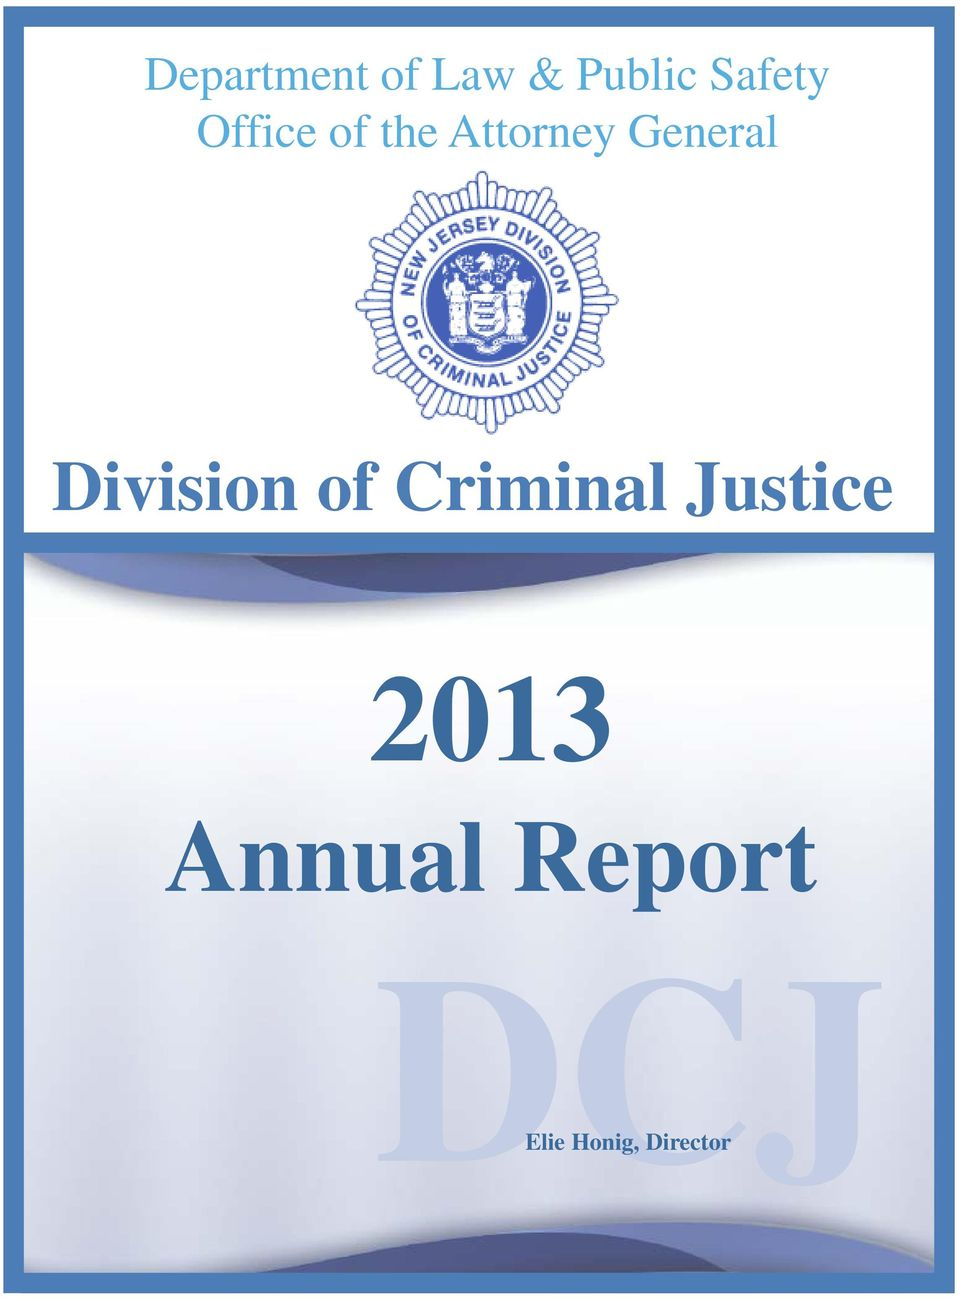 Division of Criminal Justice 2013